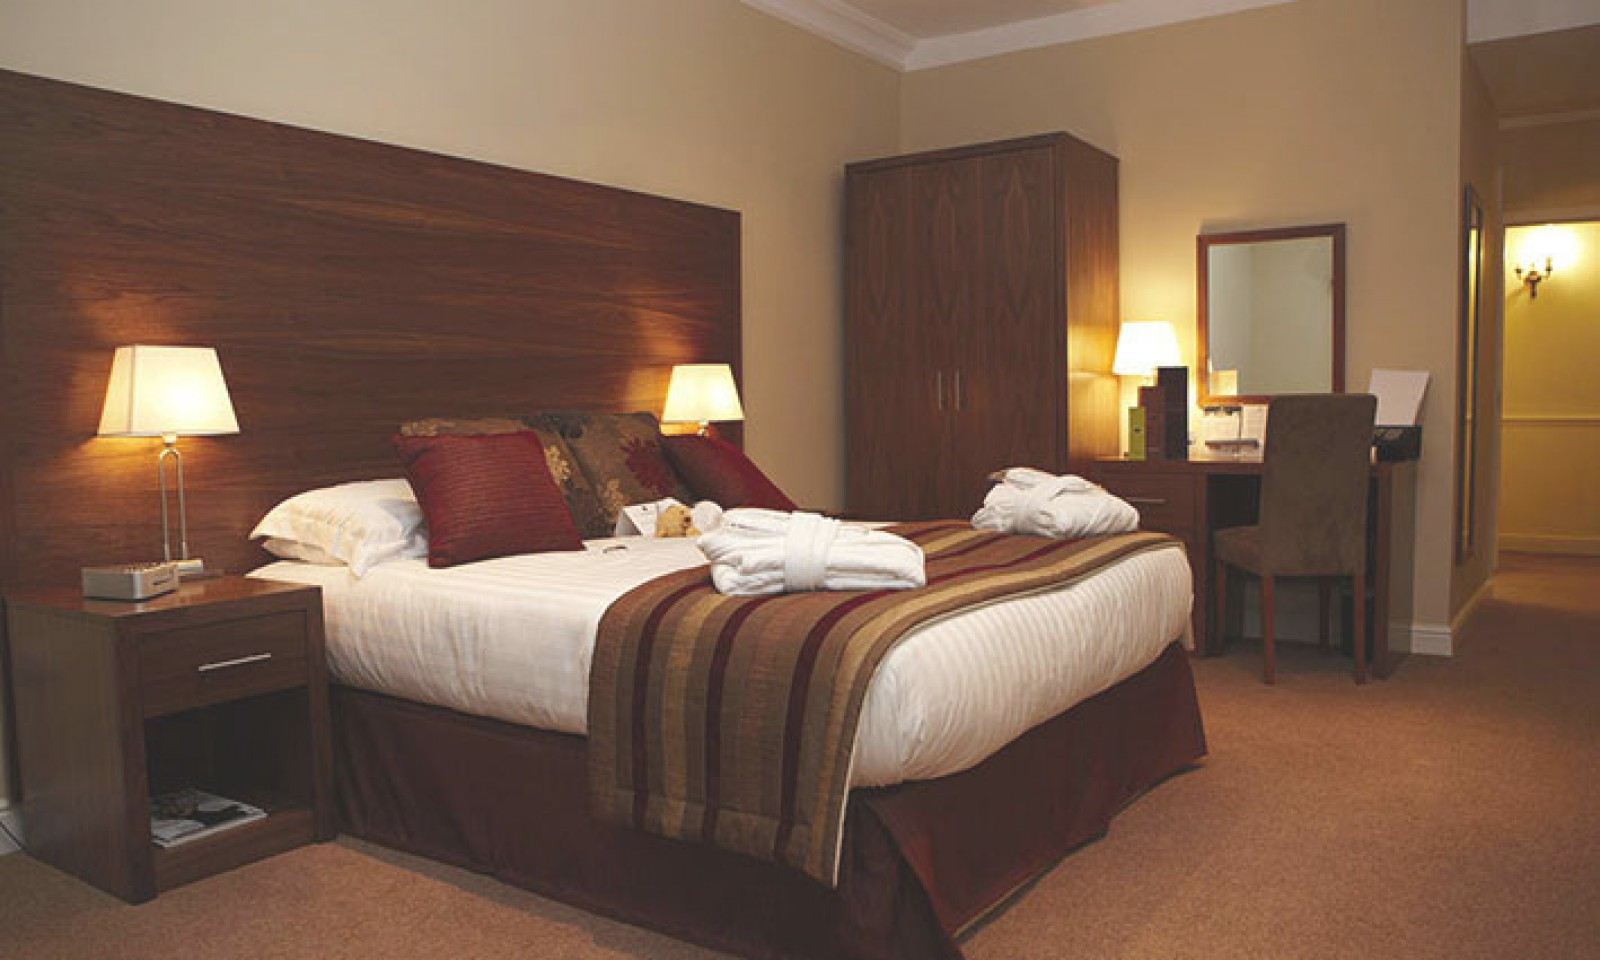 Kimberley Hotel Harrogate Executive Room